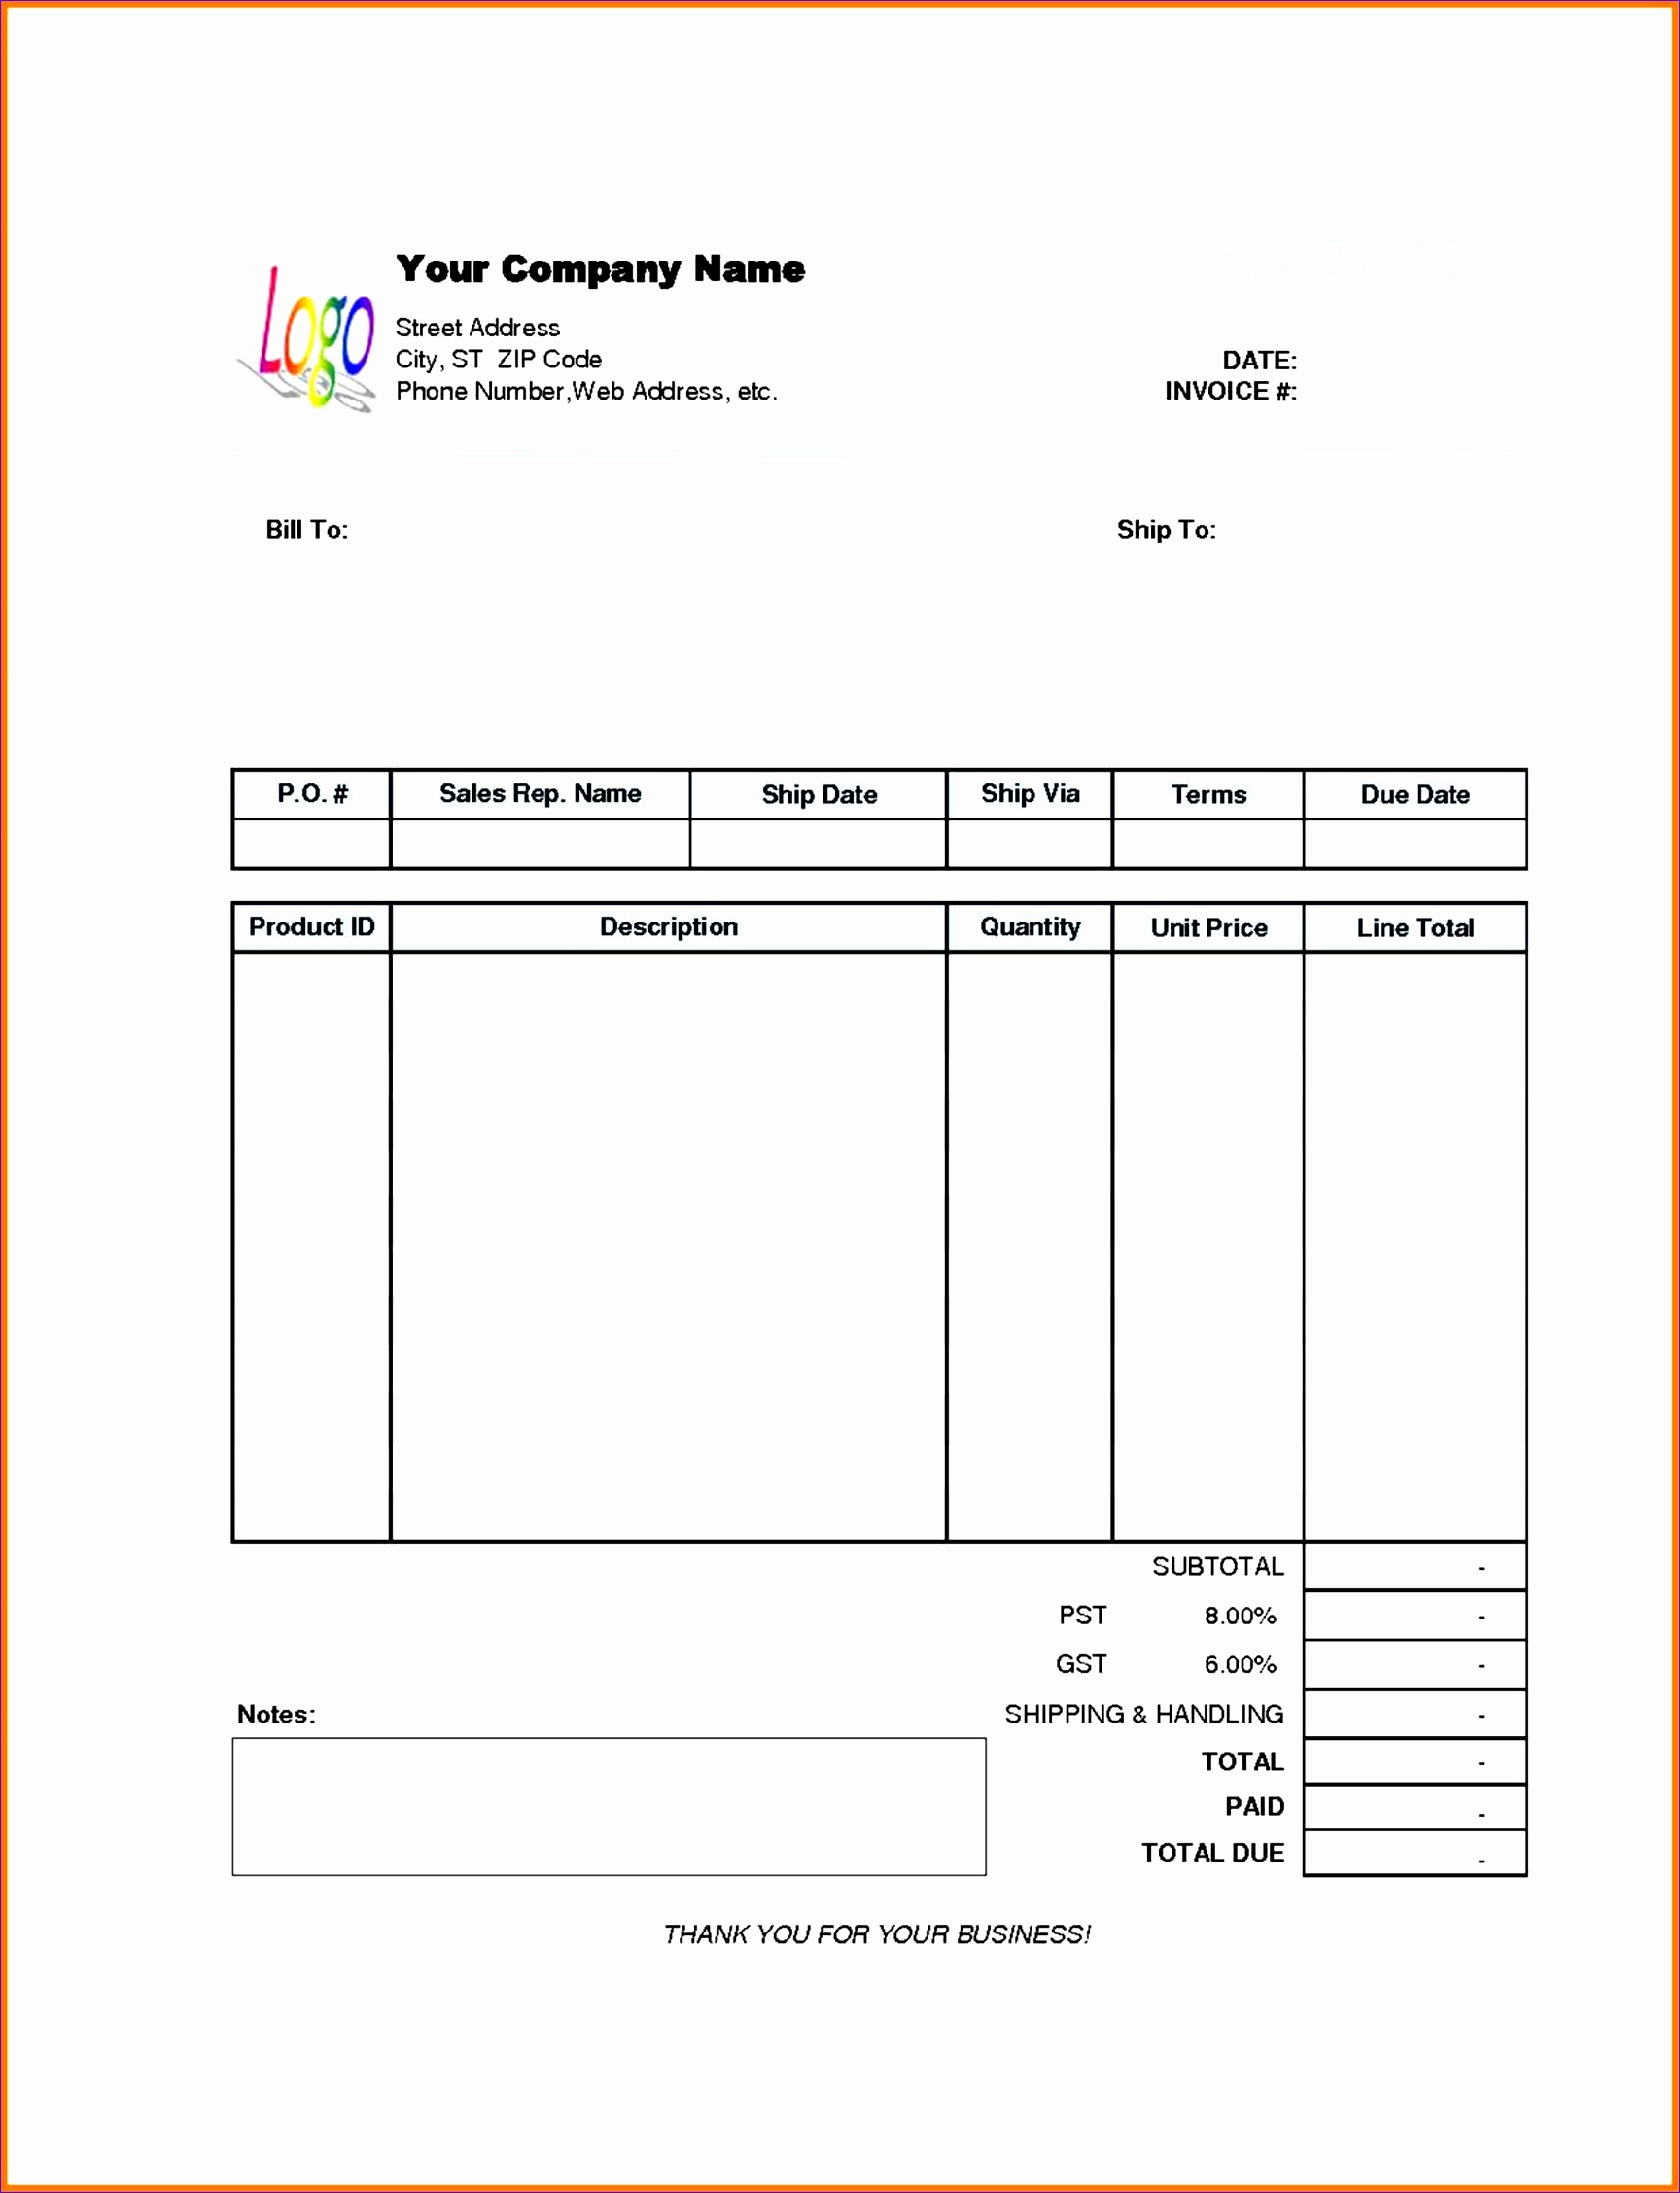 Template Excel Download list template word blank the order form excel templatez order Basic Payslip Template Excel Download form template excel templatez